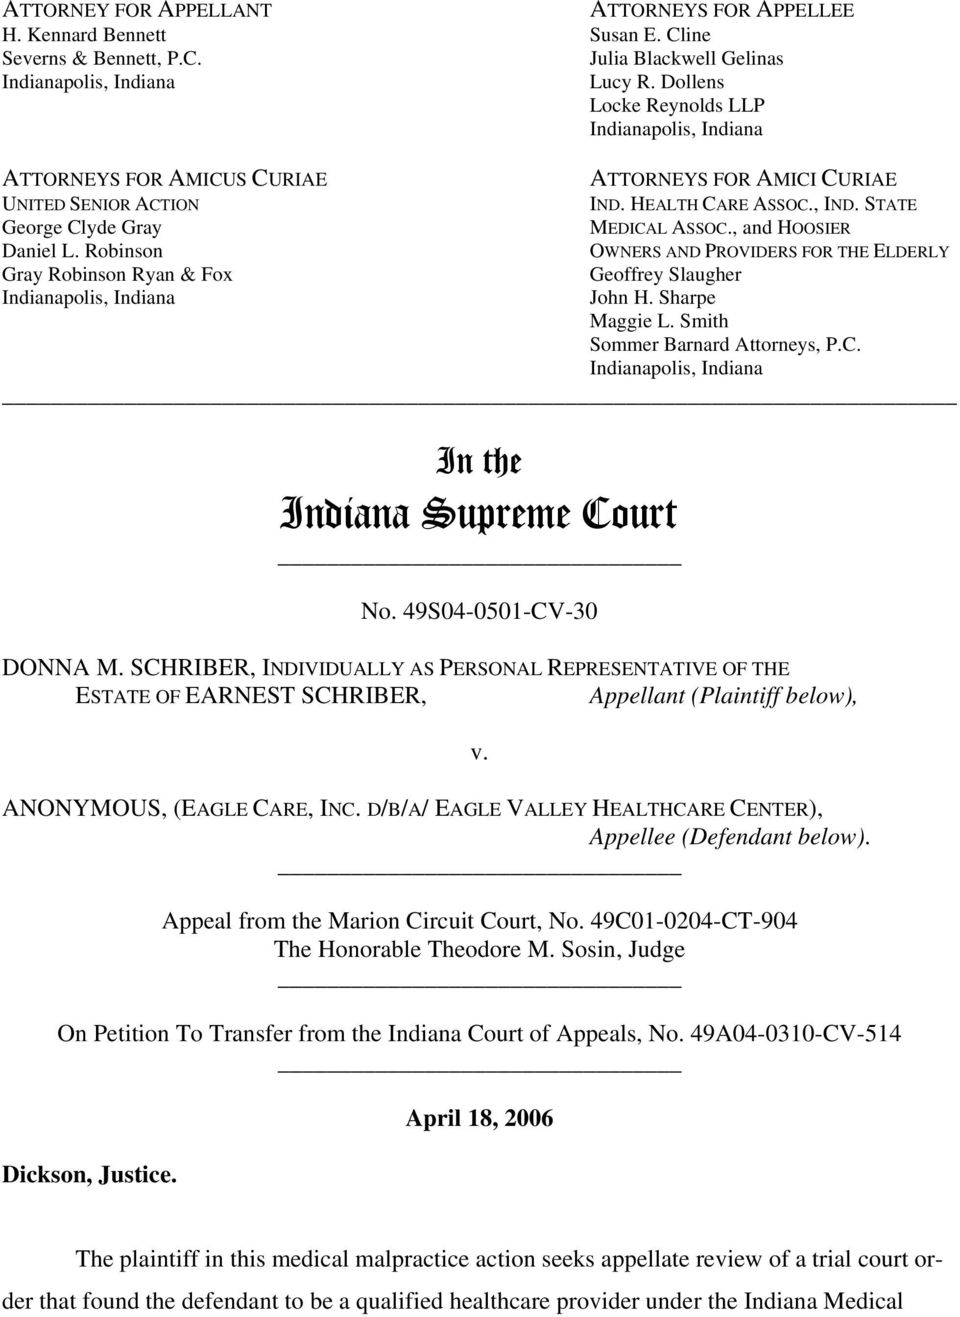 STATE MEDICAL ASSOC., and HOOSIER OWNERS AND PROVIDERS FOR THE ELDERLY Geoffrey Slaugher John H. Sharpe Maggie L. Smith Sommer Barnard Attorneys, P.C. In the Indiana Supreme Court No.